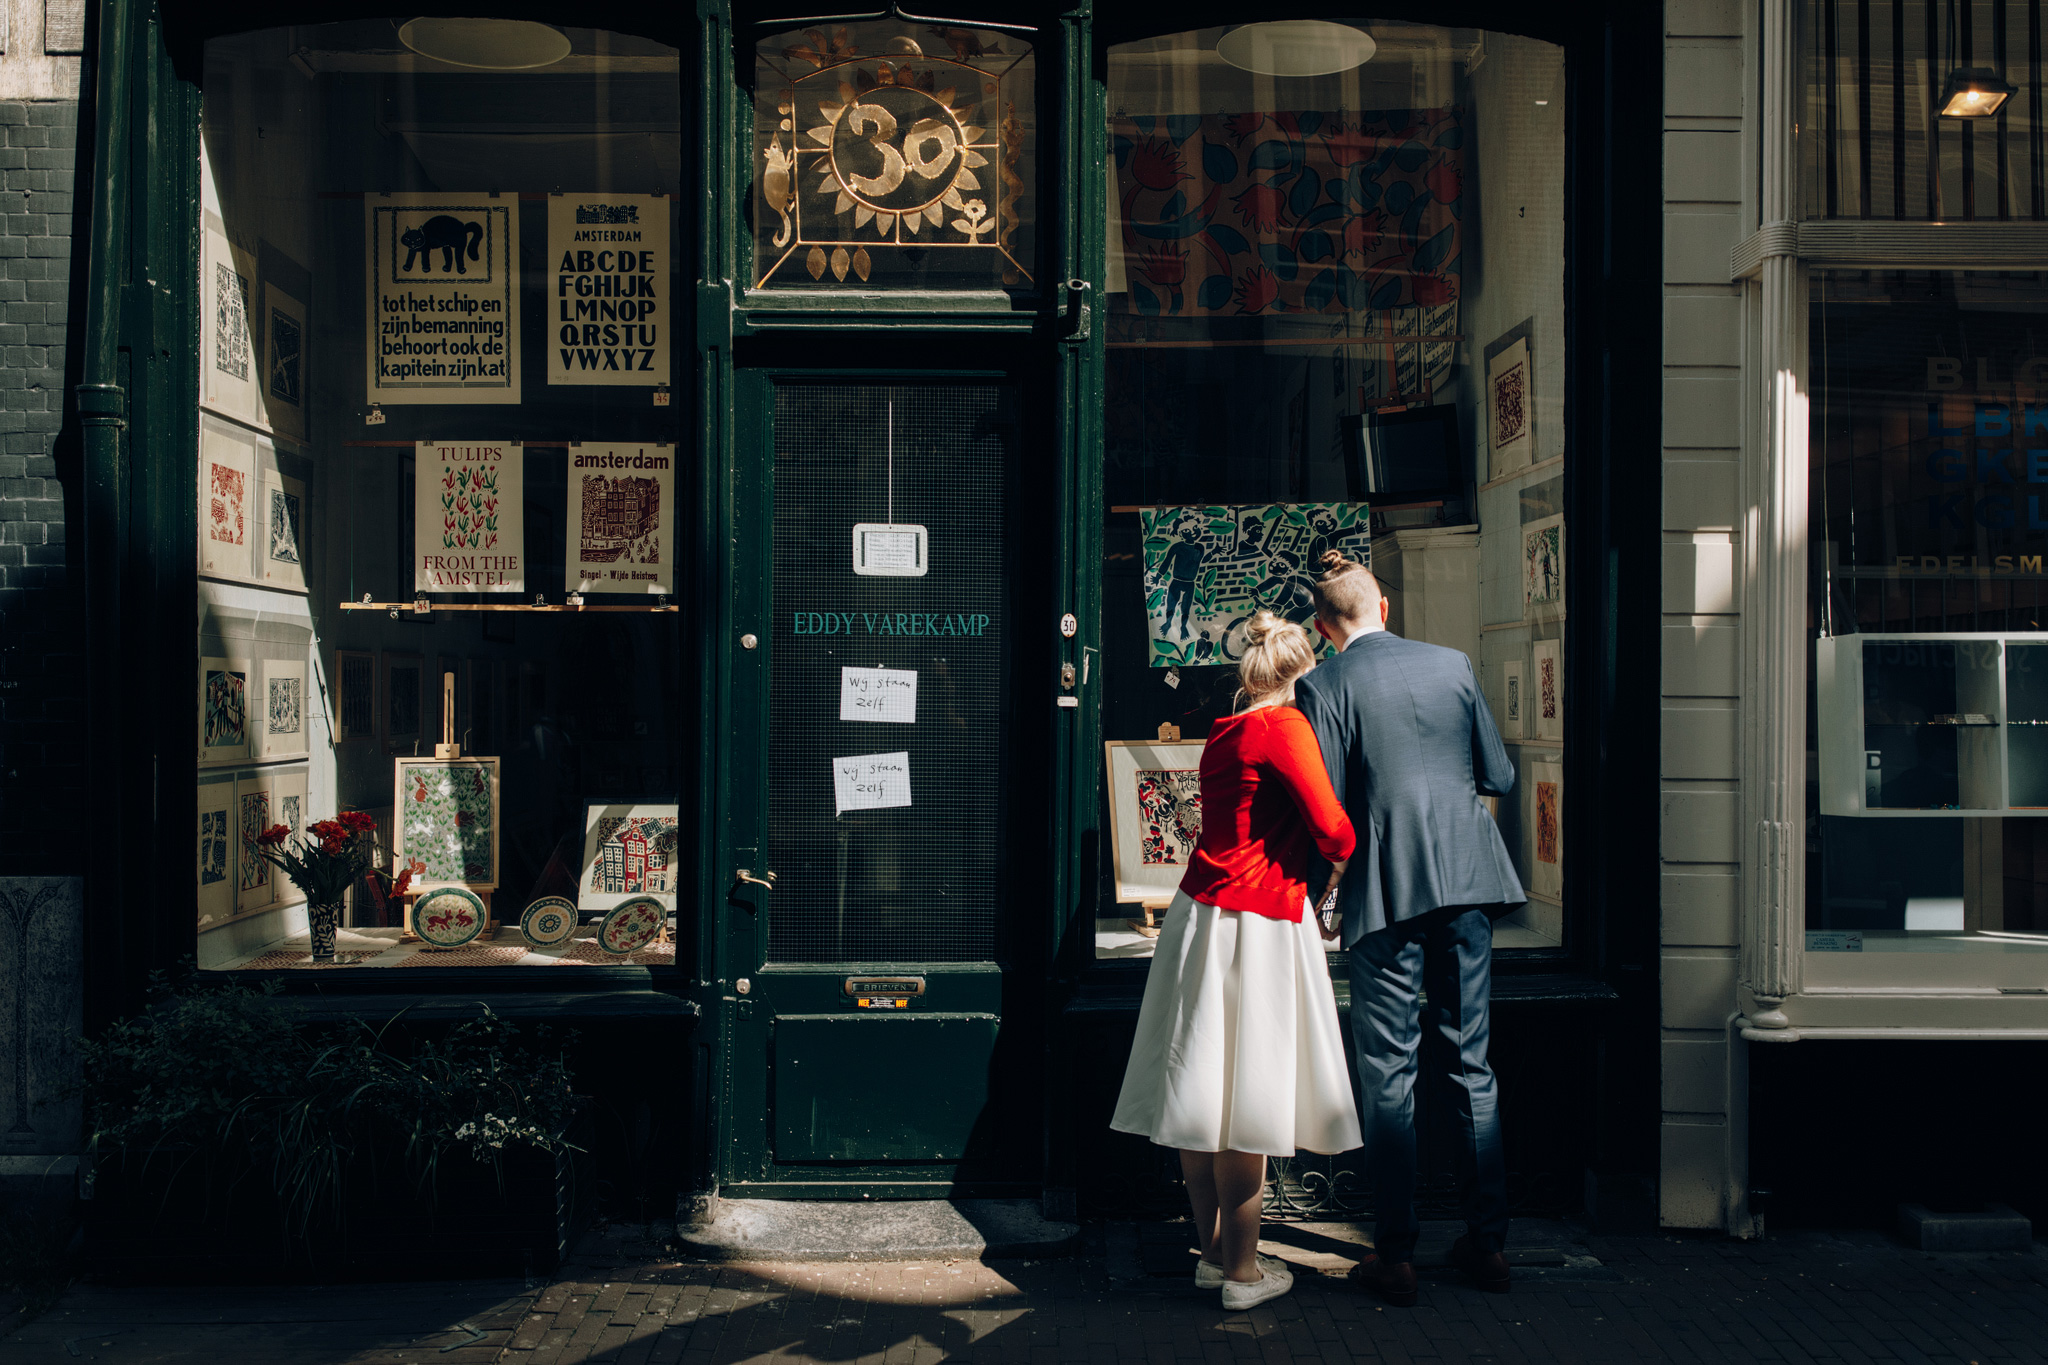 Elopement couple standing in front of art gallery in Amsterdam